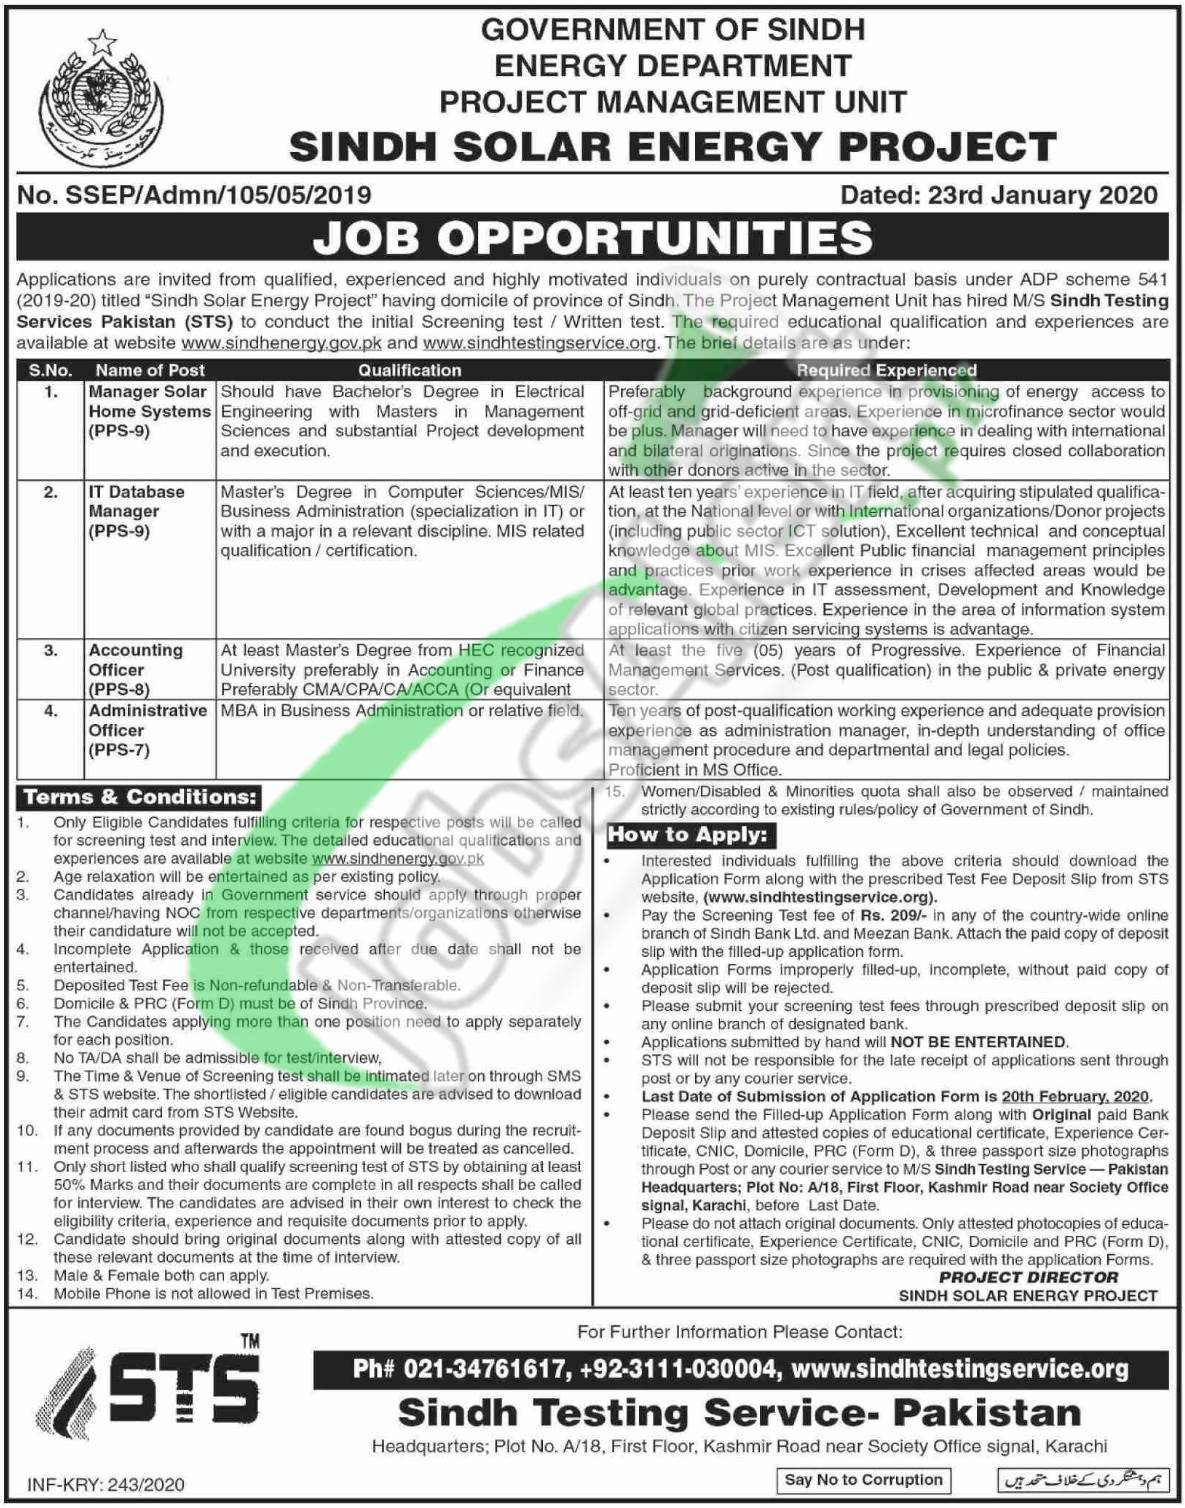 Sindh Solar Energy Project Job Opportunities